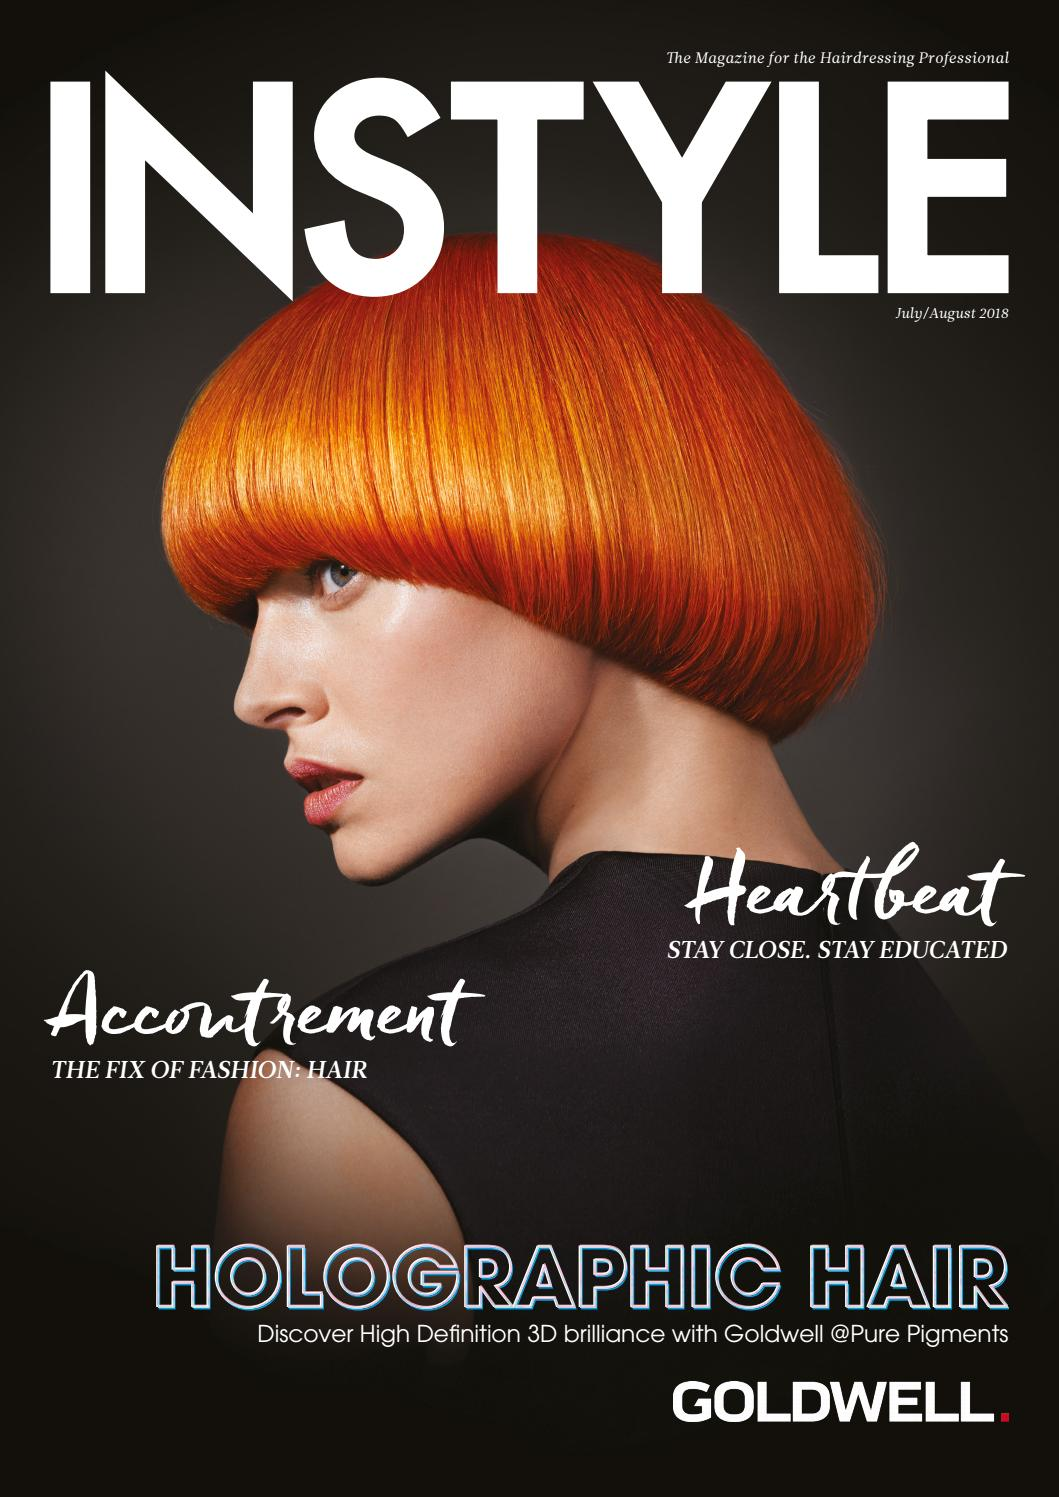 bfdd620ef21 INSTYLE July August 2018 by The Intermedia Group - issuu